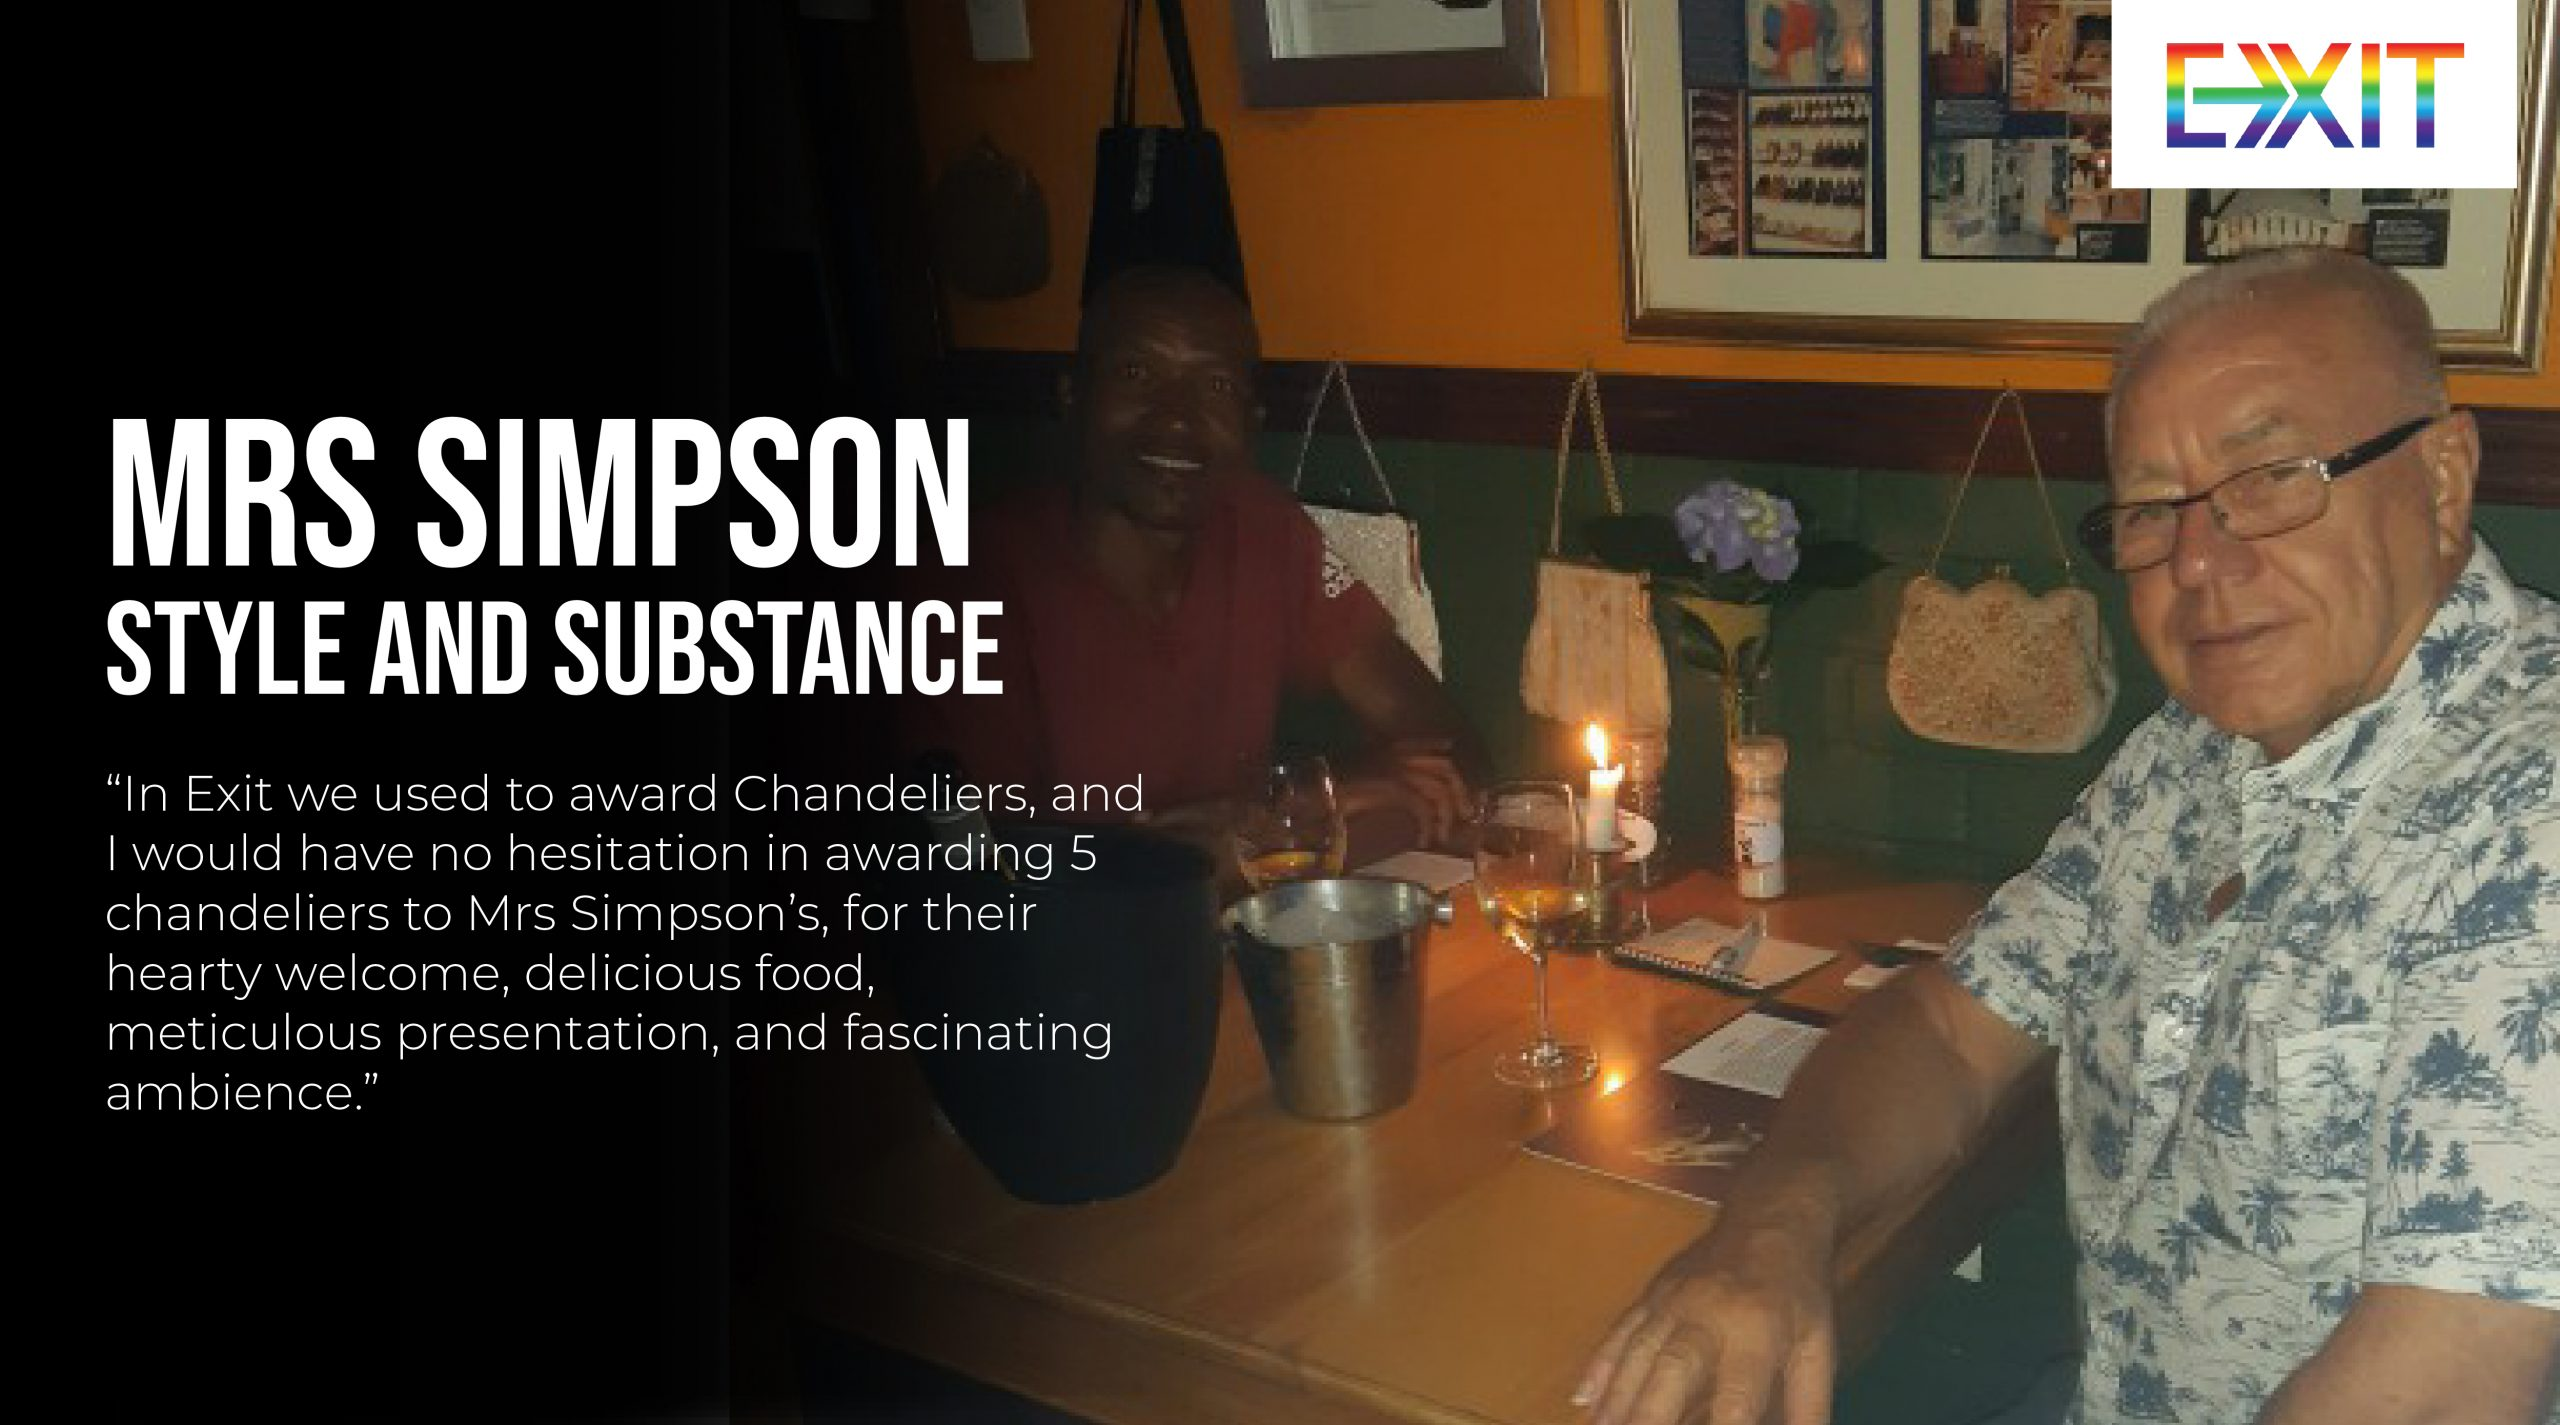 MRS SIMPSON – STYLE AND SUBSTANCE